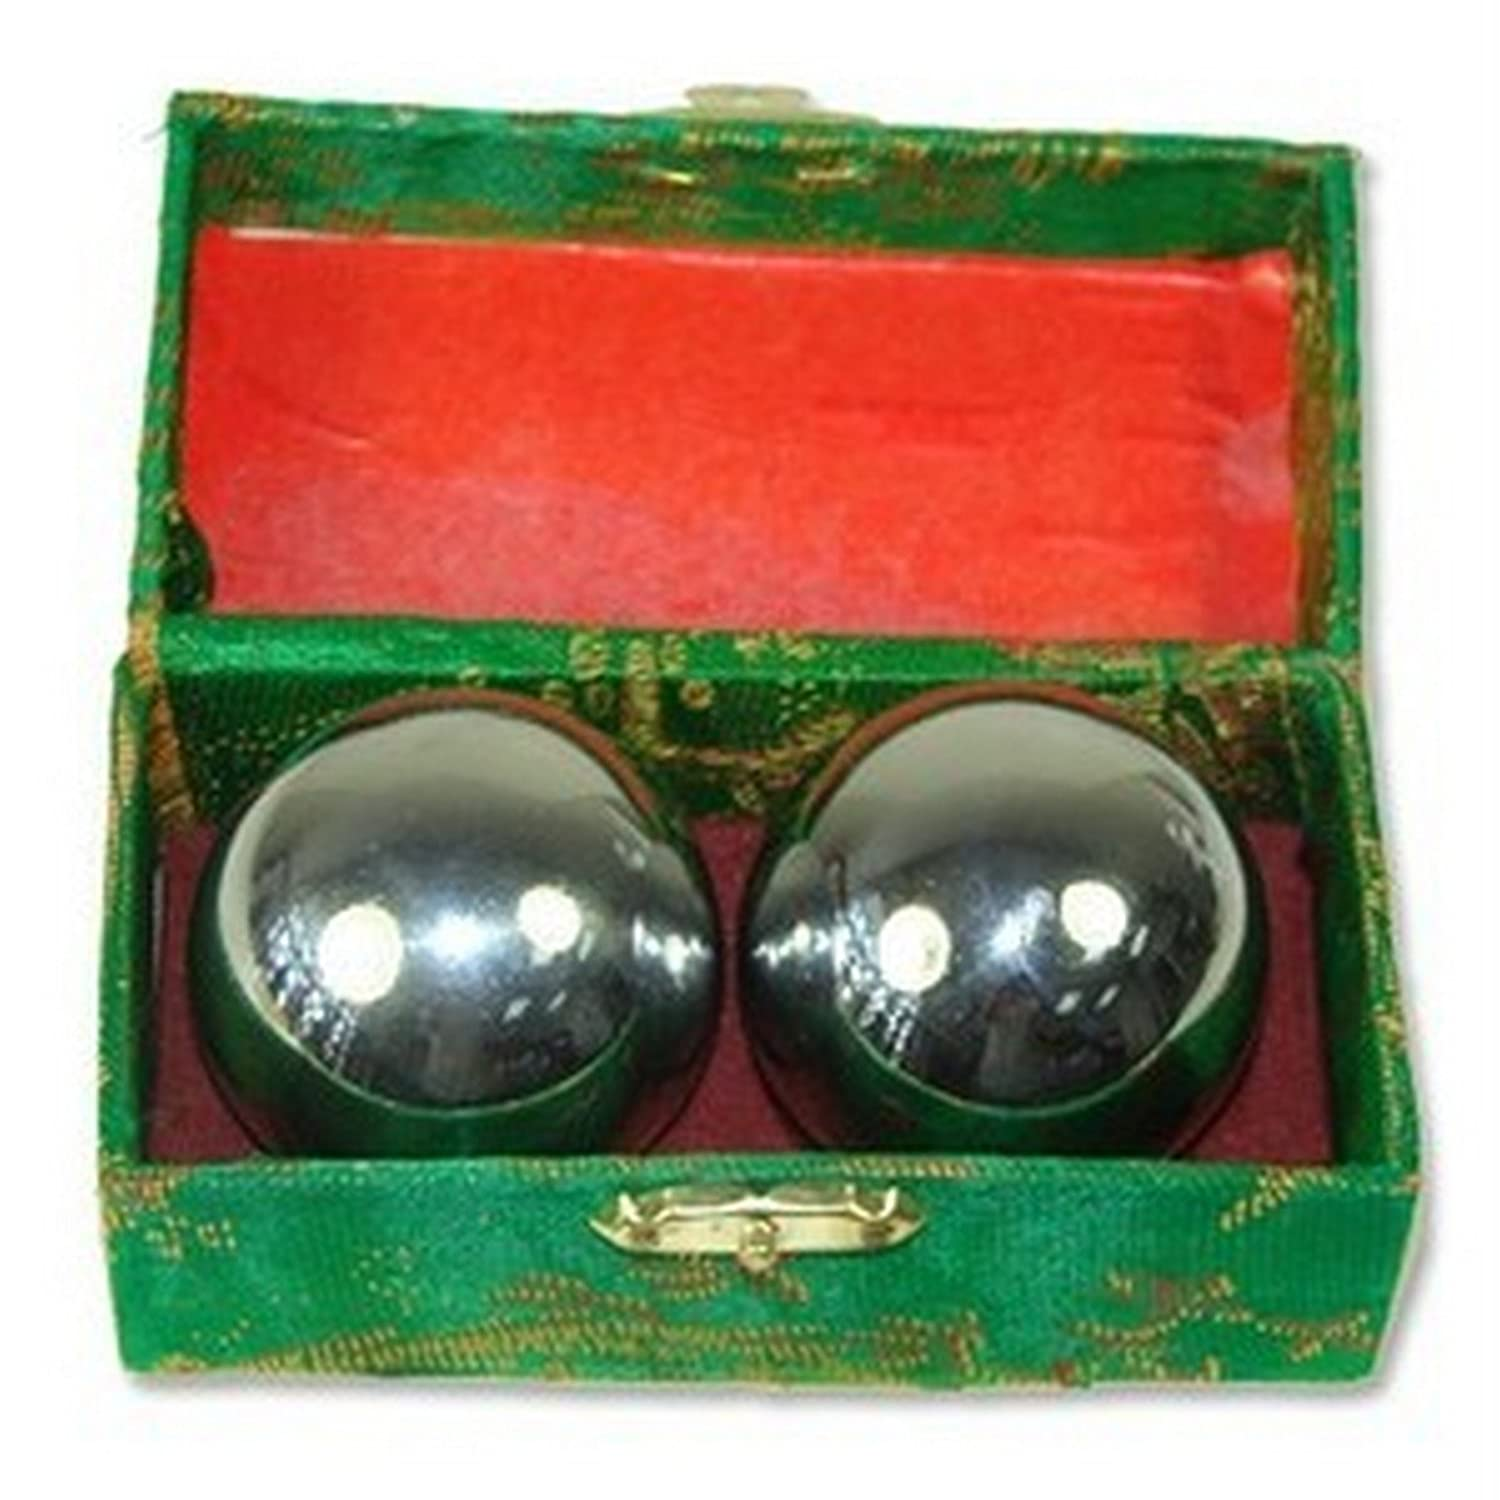 Amazon Baoding Balls Chinese Health Exercise Stress Chrome Color Personal Care